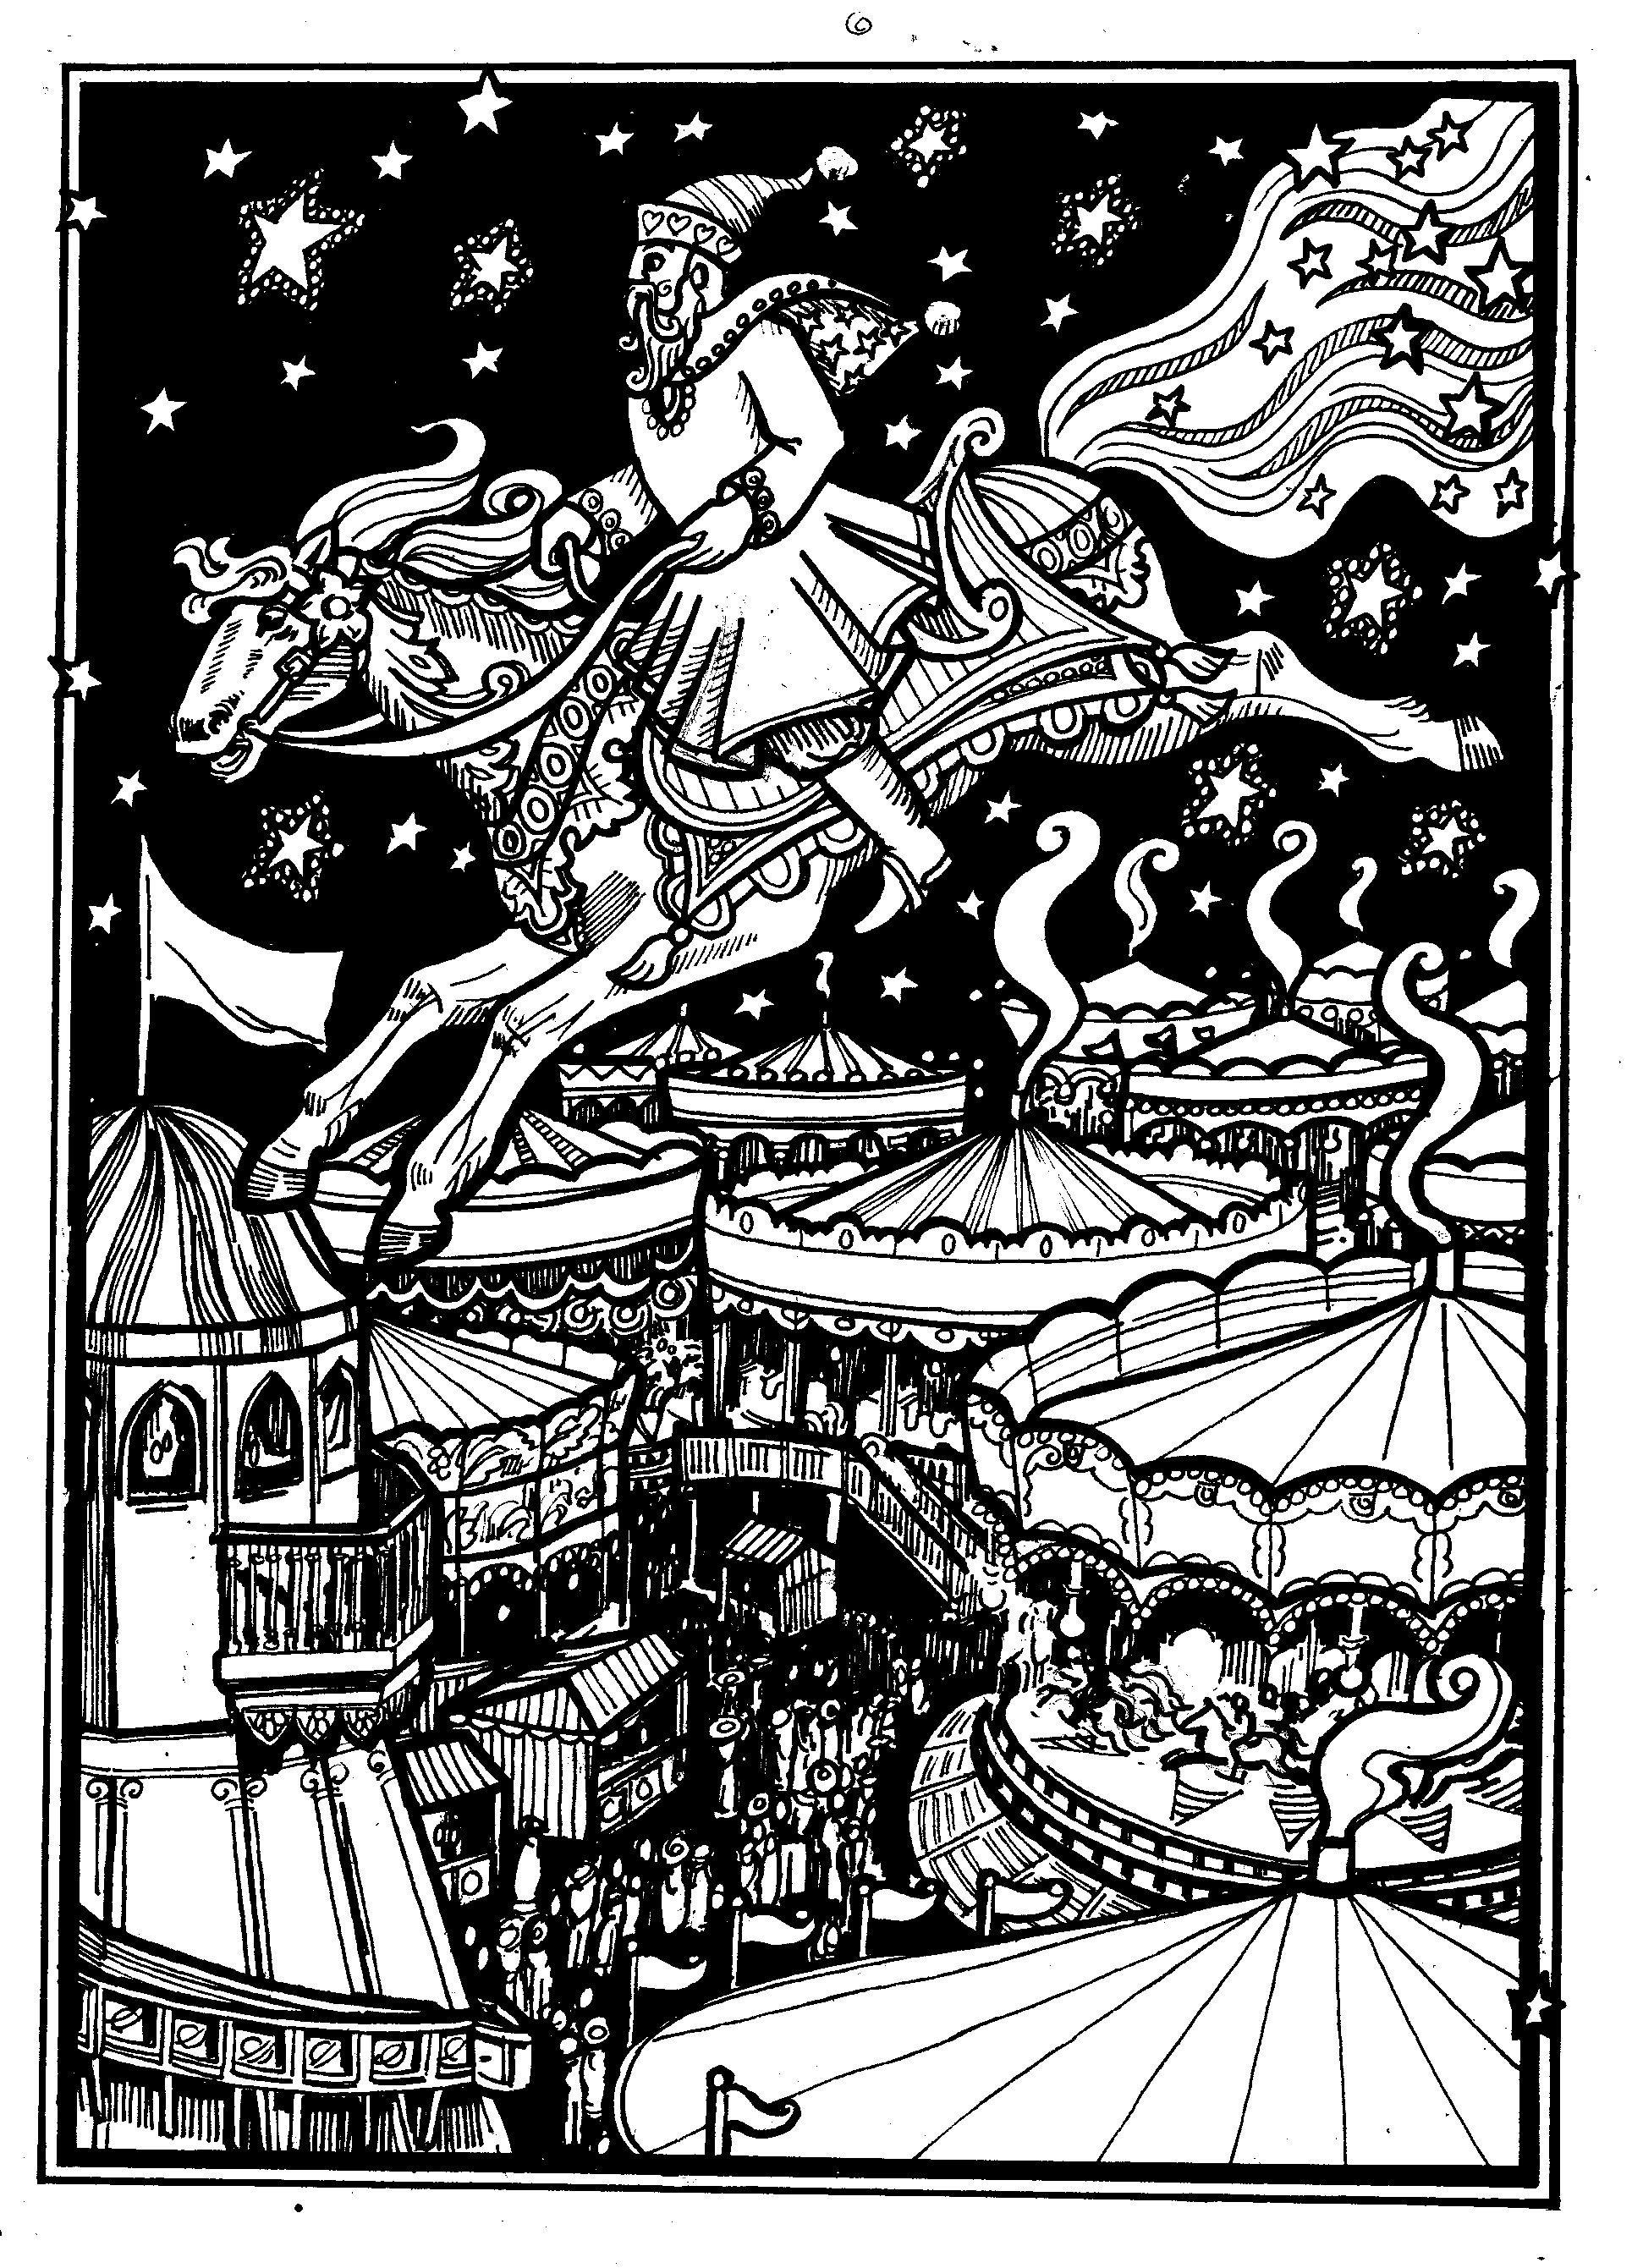 father xmas on a fairgroundorse galloping through the sky over a funfair, at night with stars.